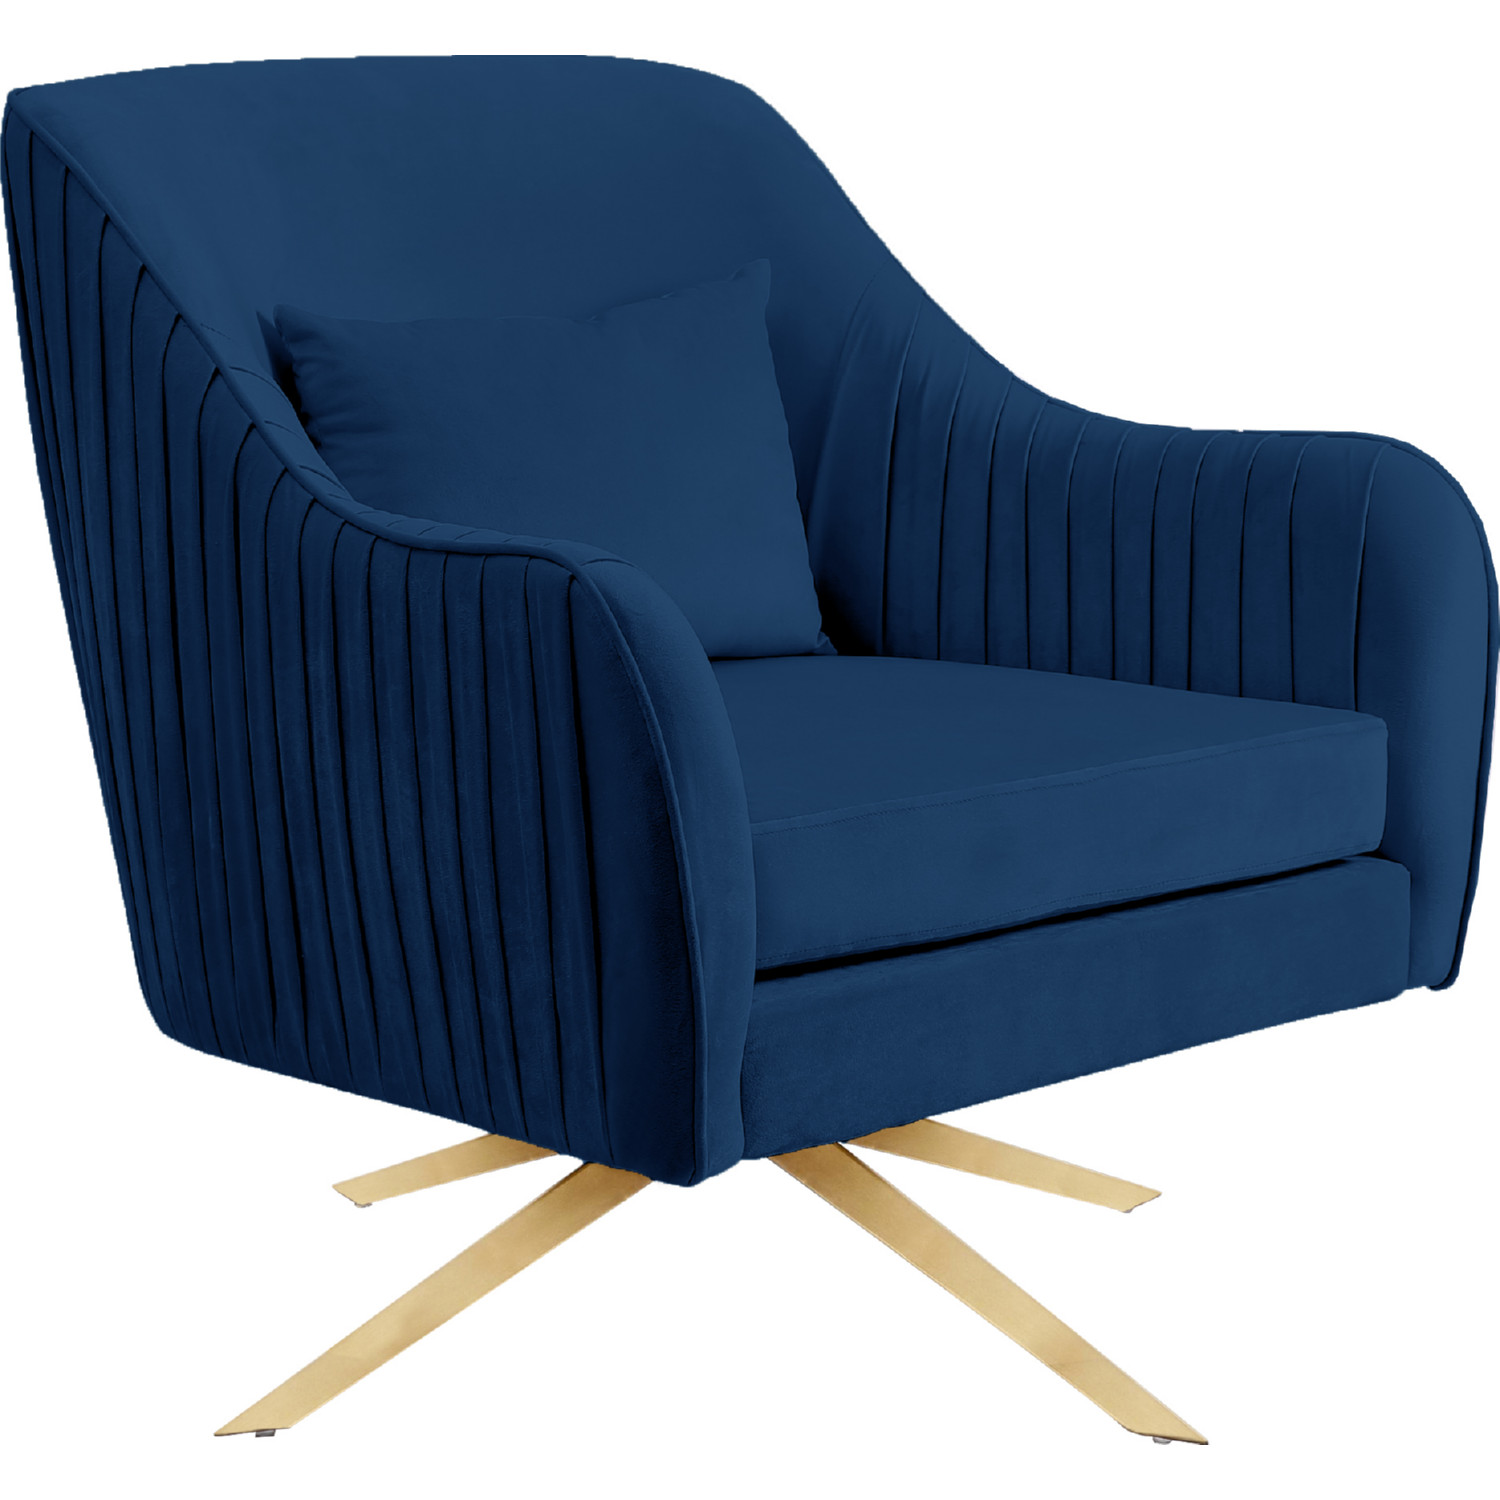 Swell Paloma Accent Chair In Navy Blue Velvet On Gold Swivel Base By Meridian Furniture Inzonedesignstudio Interior Chair Design Inzonedesignstudiocom